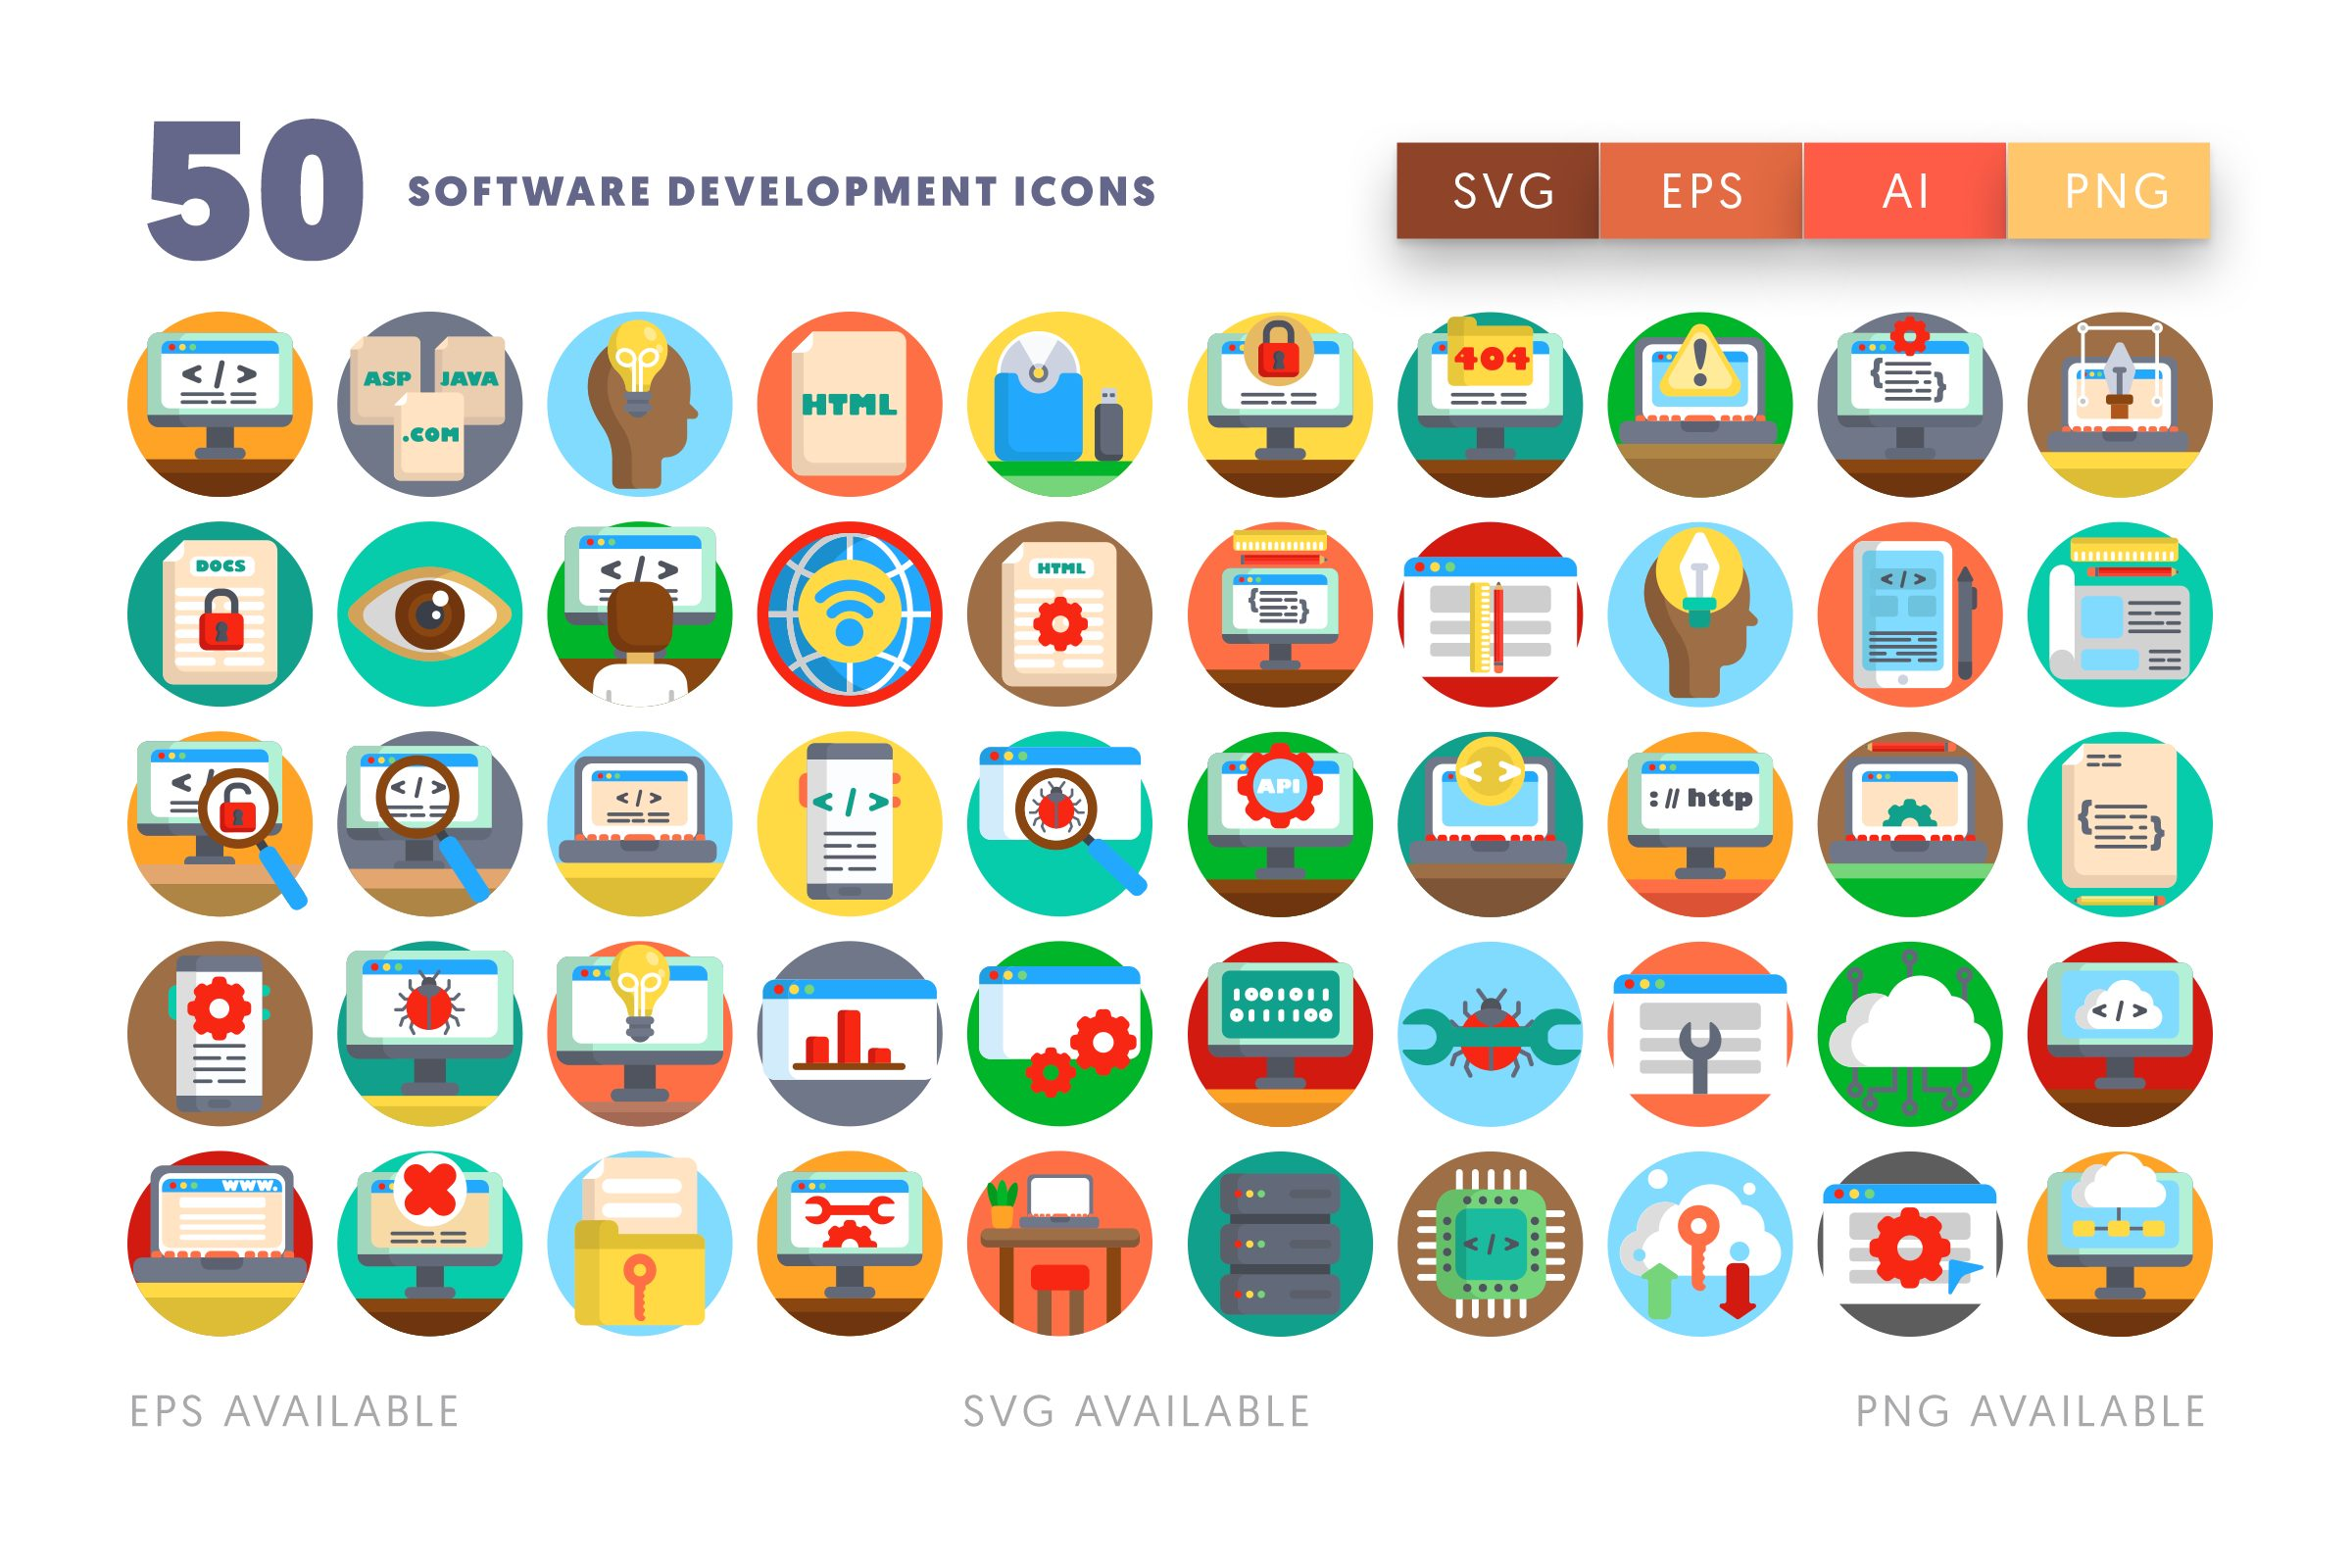 Software Development icons png/svg/eps